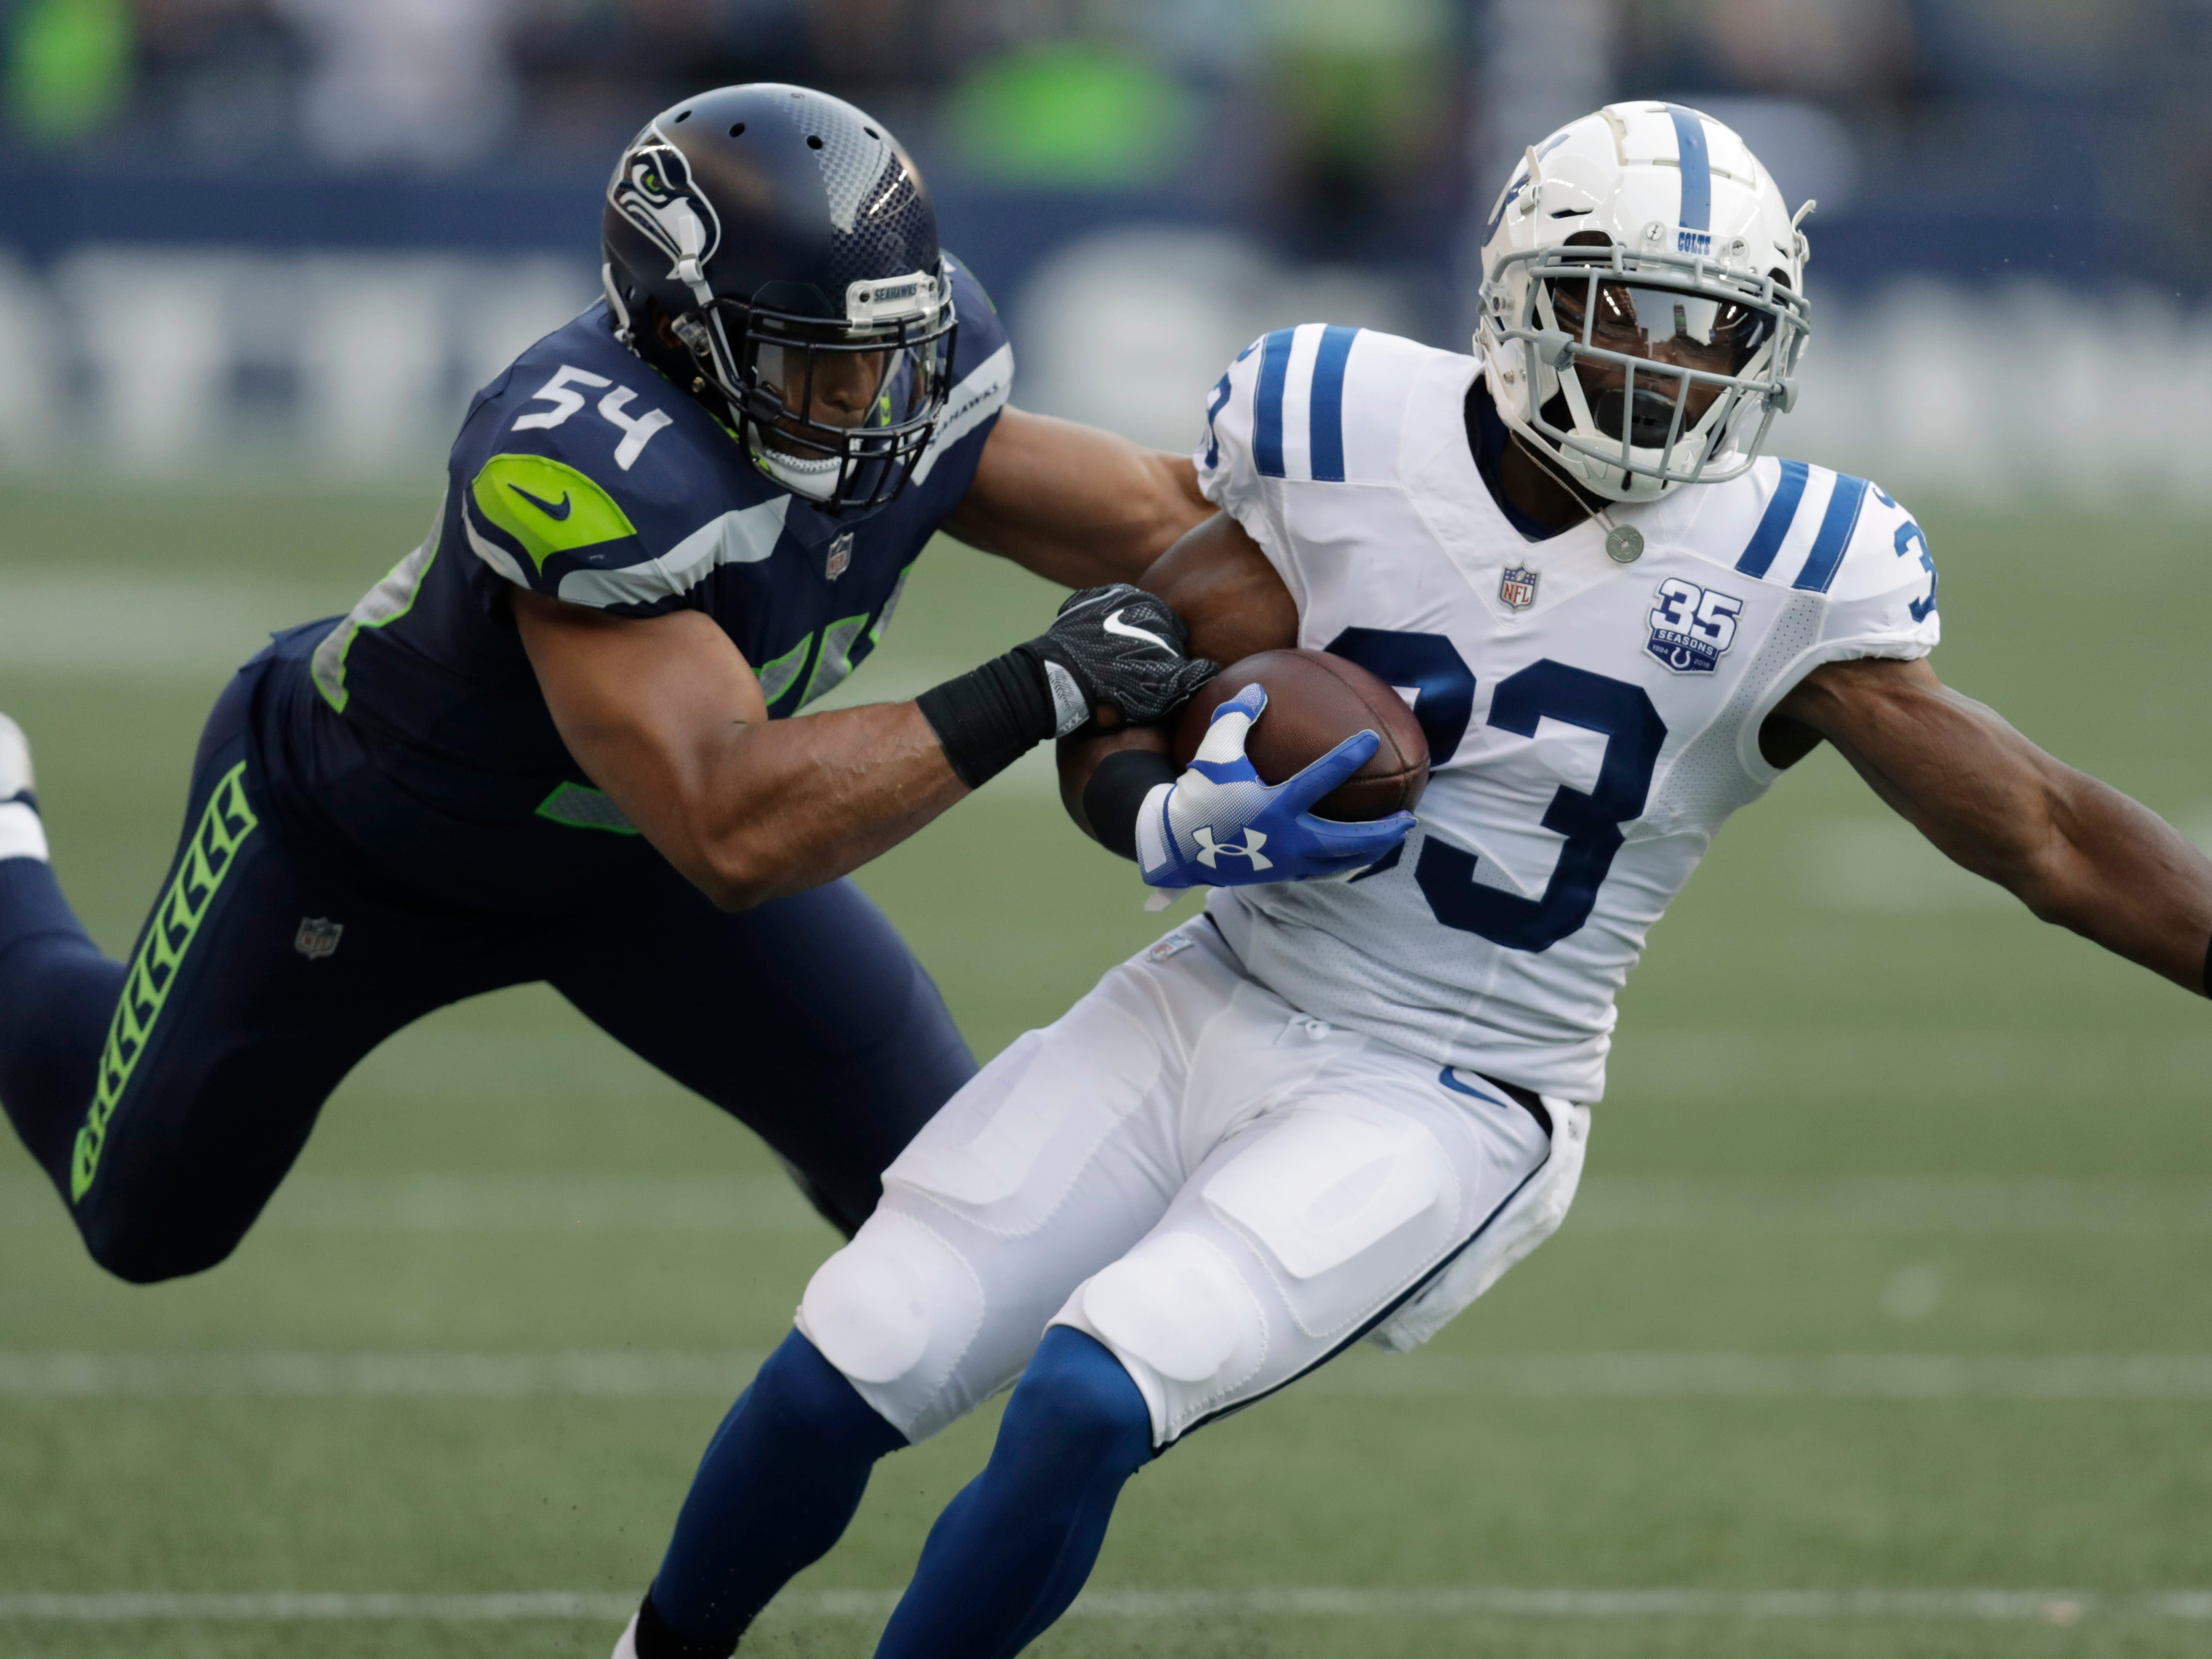 Seattle Seahawks linebacker Bobby Wagner (54) tackles Indianapolis Colts running back Robert Turbin (33) during the first half of an NFL football preseason game, Thursday, Aug. 9, 2018, in Seattle.